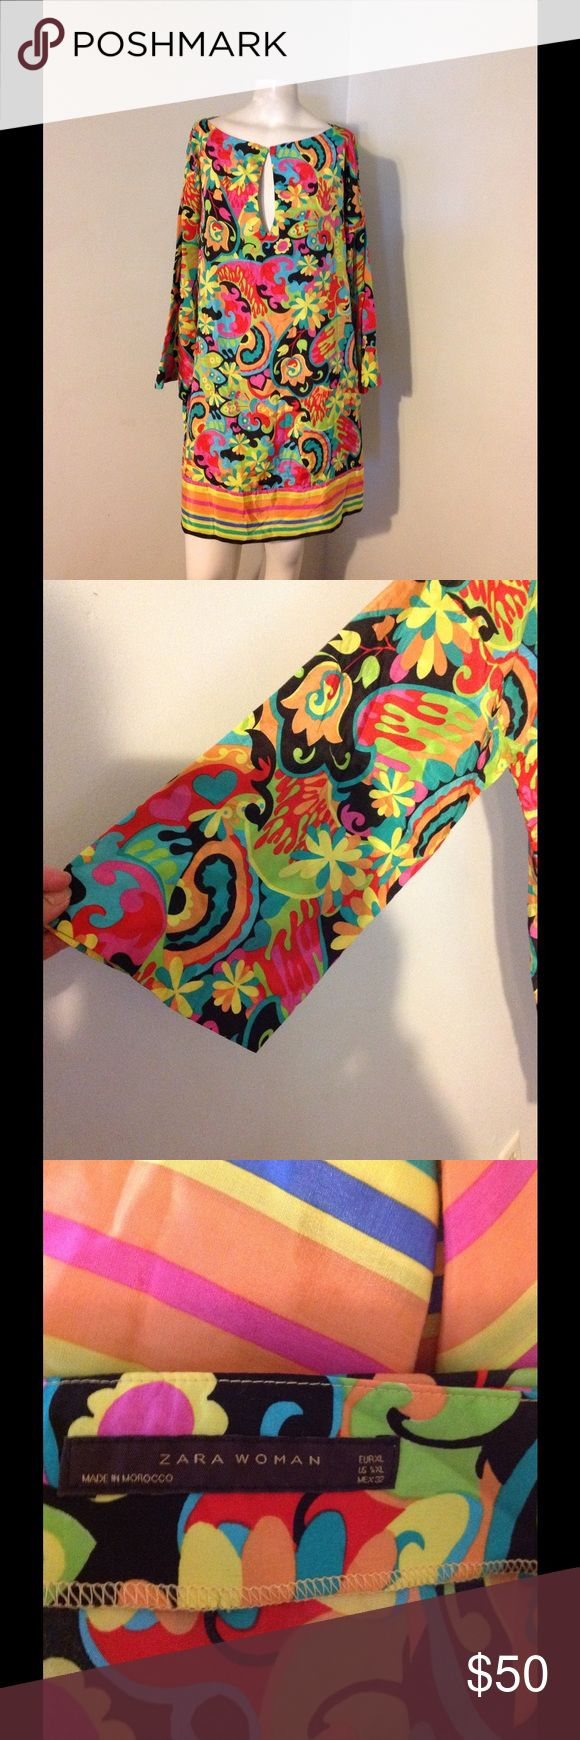 """Zara Woman Colorful Print Tunic Dress XL Very nice Zara dress. Very colorful print silk/cotton blend. Keyhole front with flared sleeves. Great condition. Chest 43"""" Hips 45"""" Length 33"""" Has side pockets Zara Dresses"""